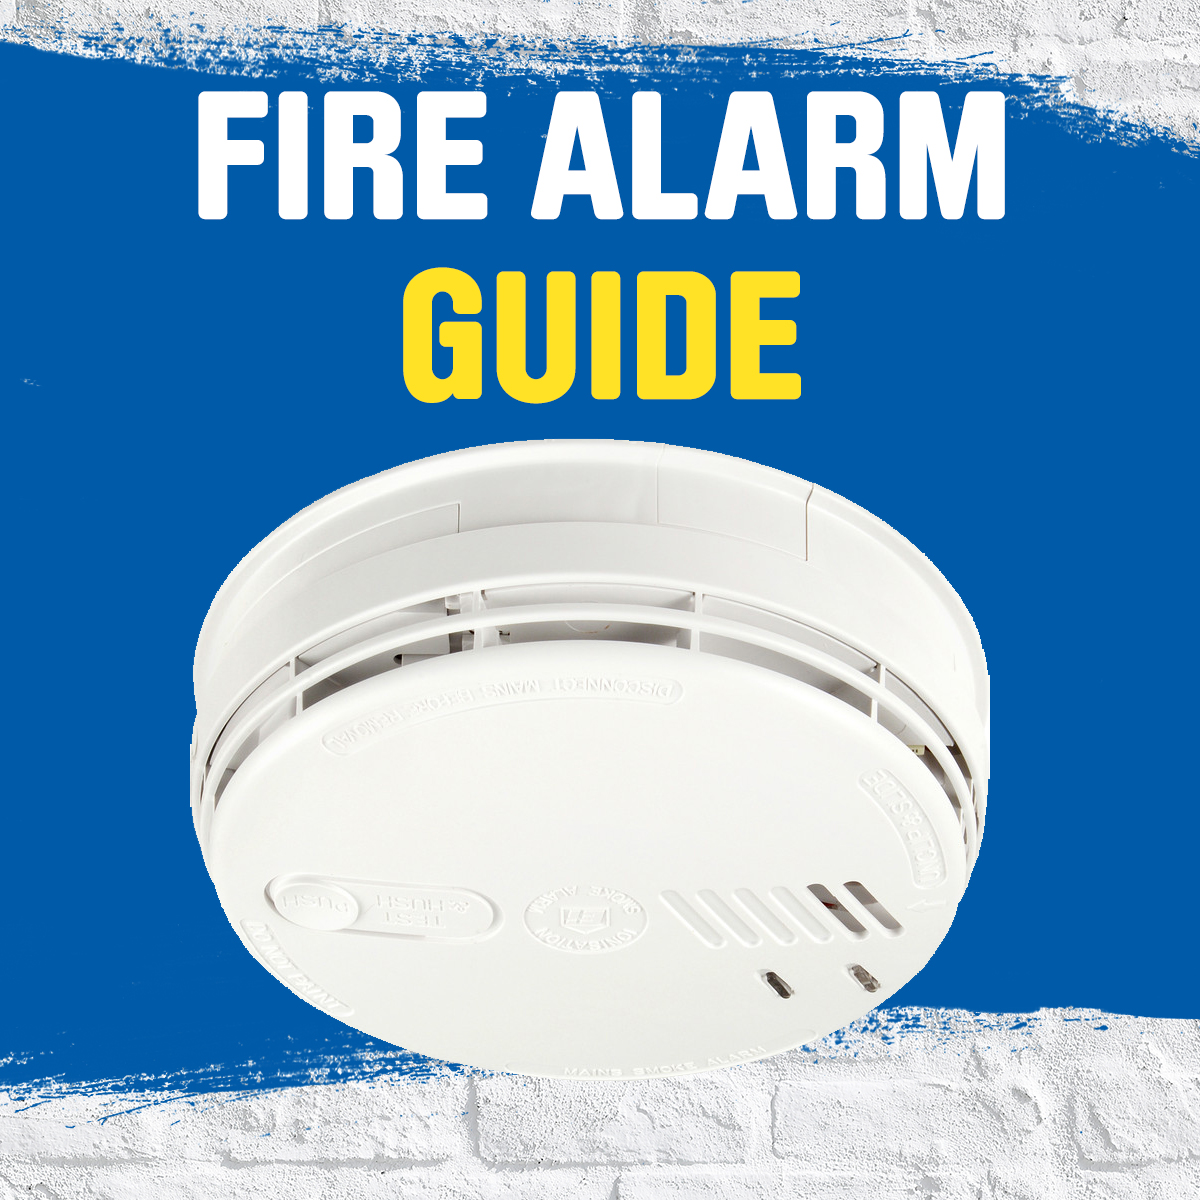 Choosing the right fire alarm